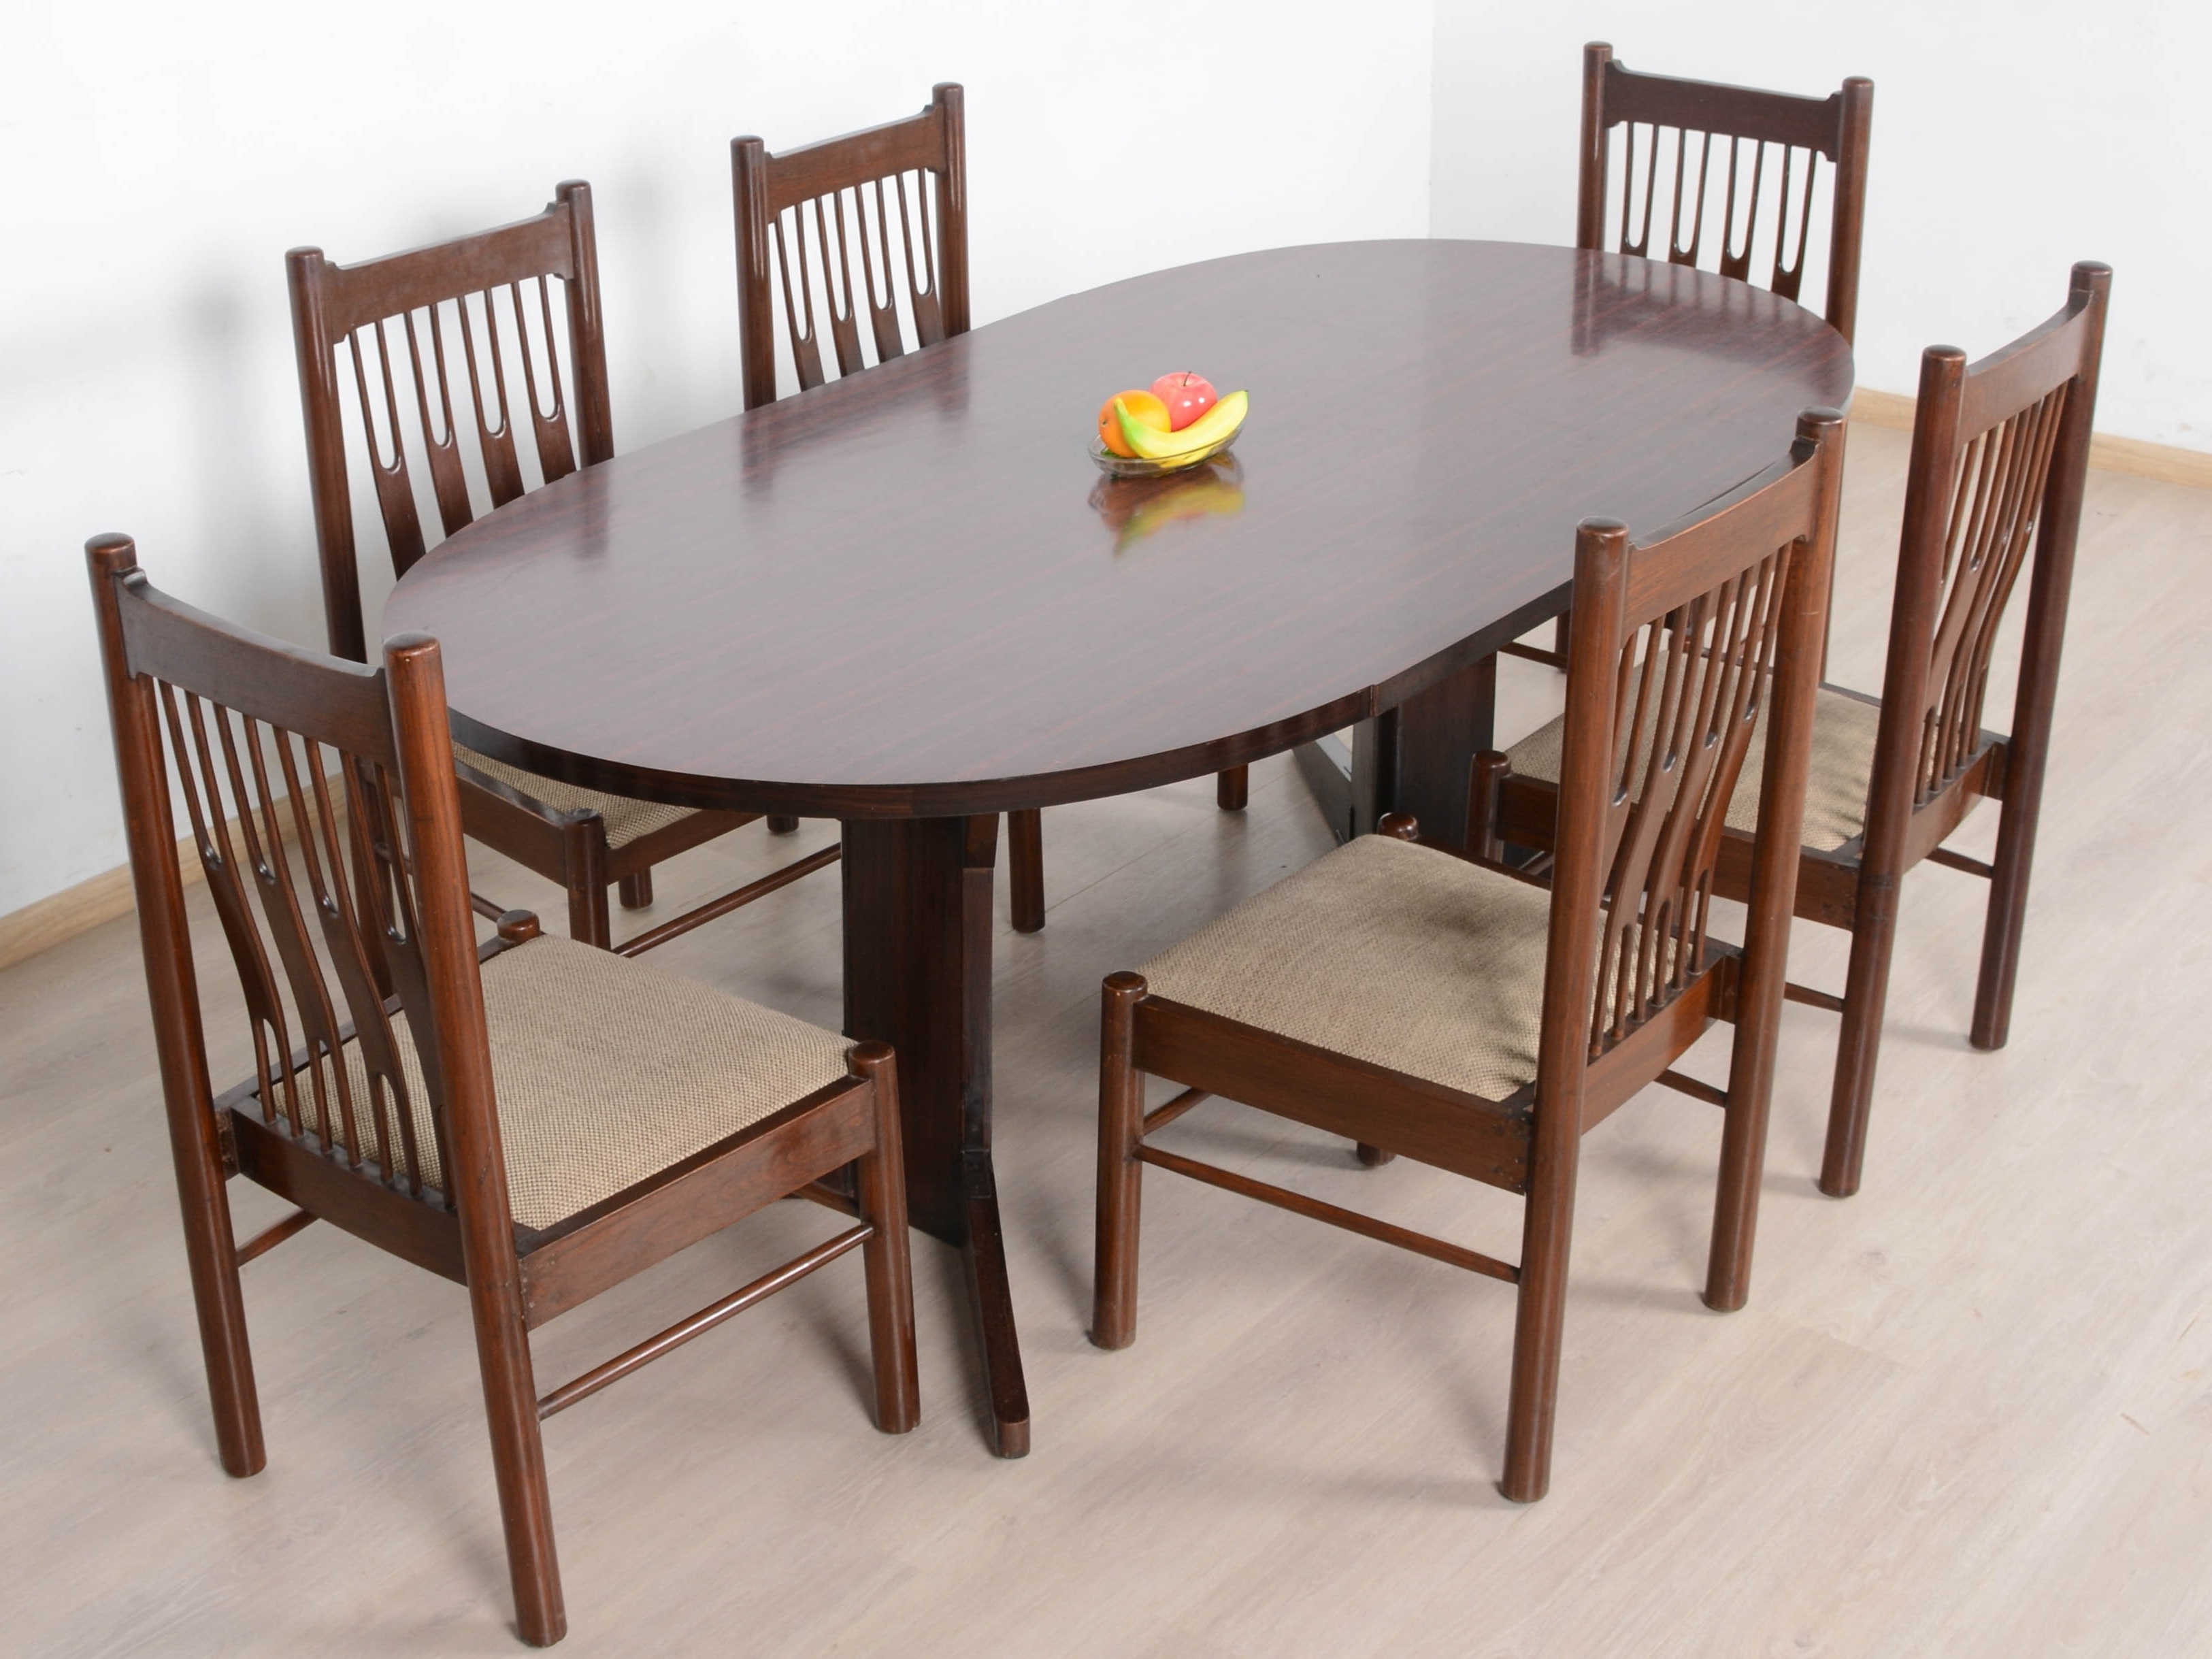 Favorite Mason Teak 6 Seater Dining Table Set: Buy And Sell Used Furniture Intended For Six Seater Dining Tables (View 8 of 25)